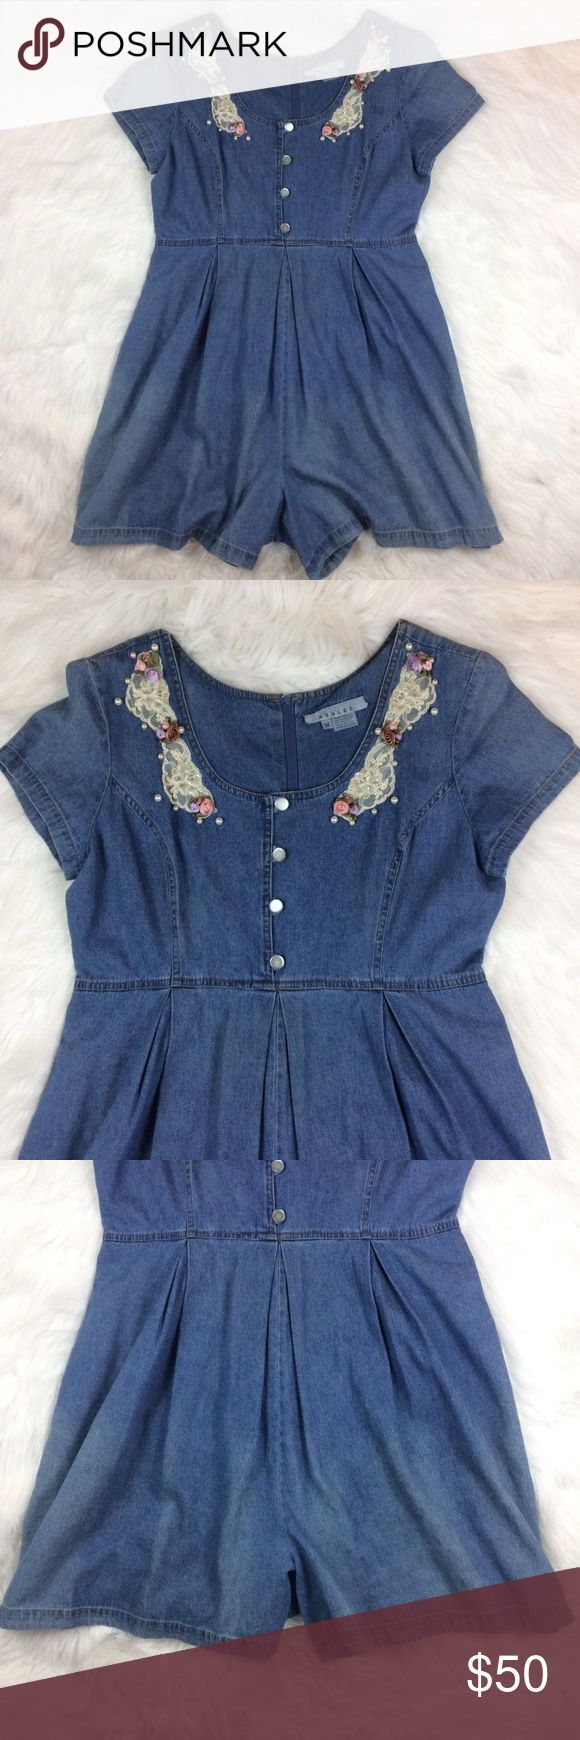 "Vintage 90's Denim Jean Romper Floral Lace Pearls Vintage ASHLEE Denim Jean Romper, One Piece, Shorts w/ Lace, Pearl, & Floral Applique. Hand Pockets. Zip-up Back. Tacked in Shoulder Pads That Can Be Kept or Removed, 80s/90s. Very ""Kelly Kapowski.""  VINTAGE Size 14, SEE MEASUREMENTS BELOW AS VTG SIZES ARE SMALLER THAN CURRENT SIZES. One Seam Ripping Out at Back of Arm, Not a Hole.  MEASUREMENTS LAYING FLAT:  Pit to Pit: 20.5"" Waist Laying Flat (at Seaming): 17.5"" Rise (Crotch to Seamed…"